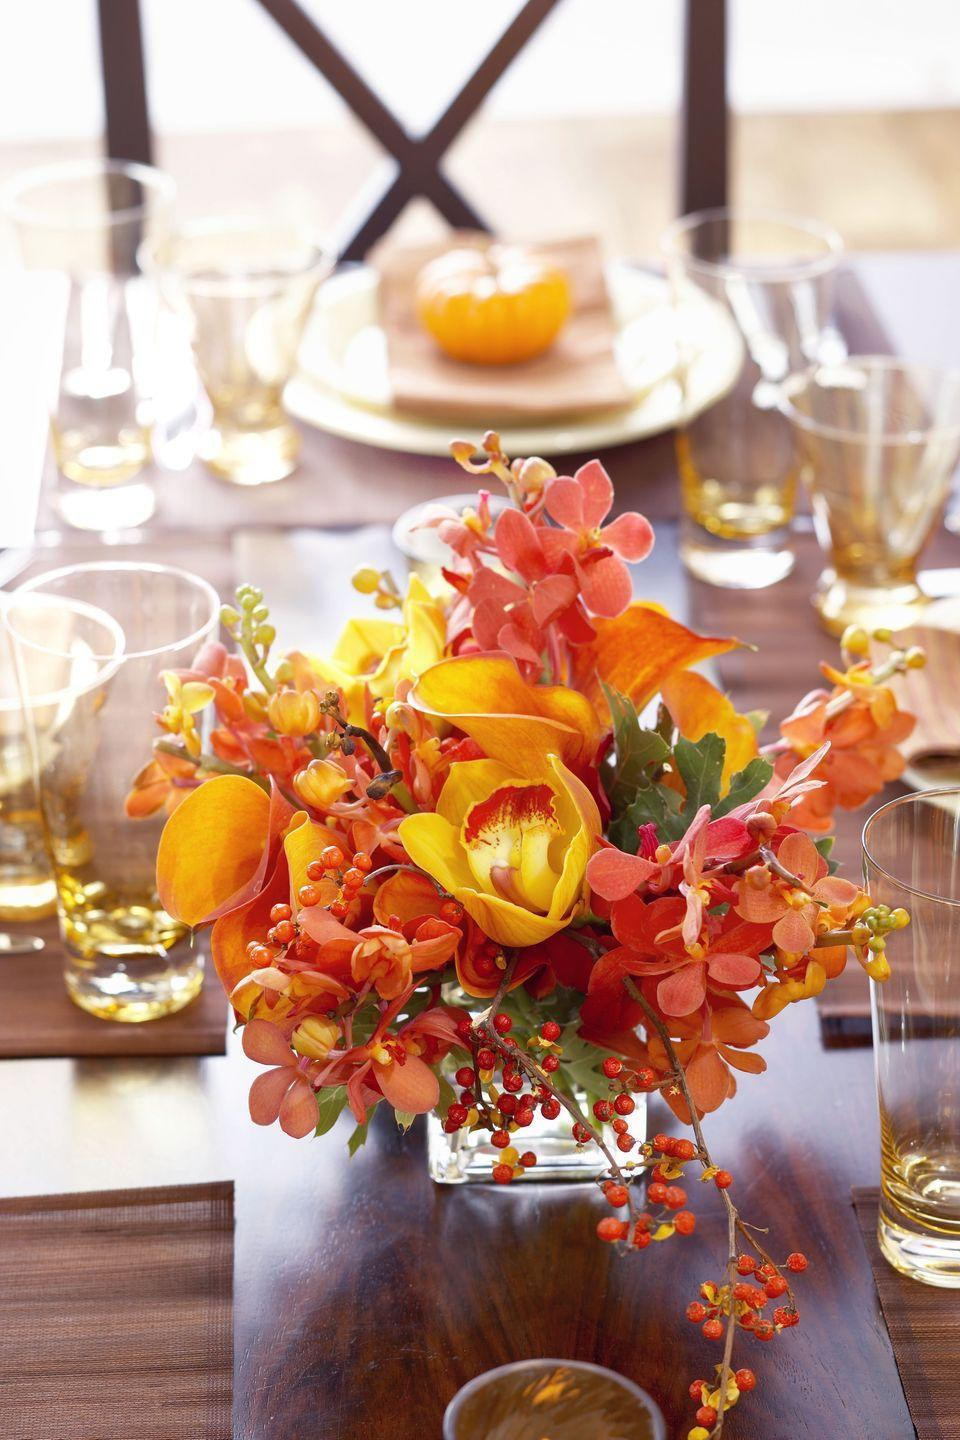 <p>When it doubt, choose a bold arrangement of flowers in autumnal hues. Incorporate berry branches to make even more of a statement.</p>